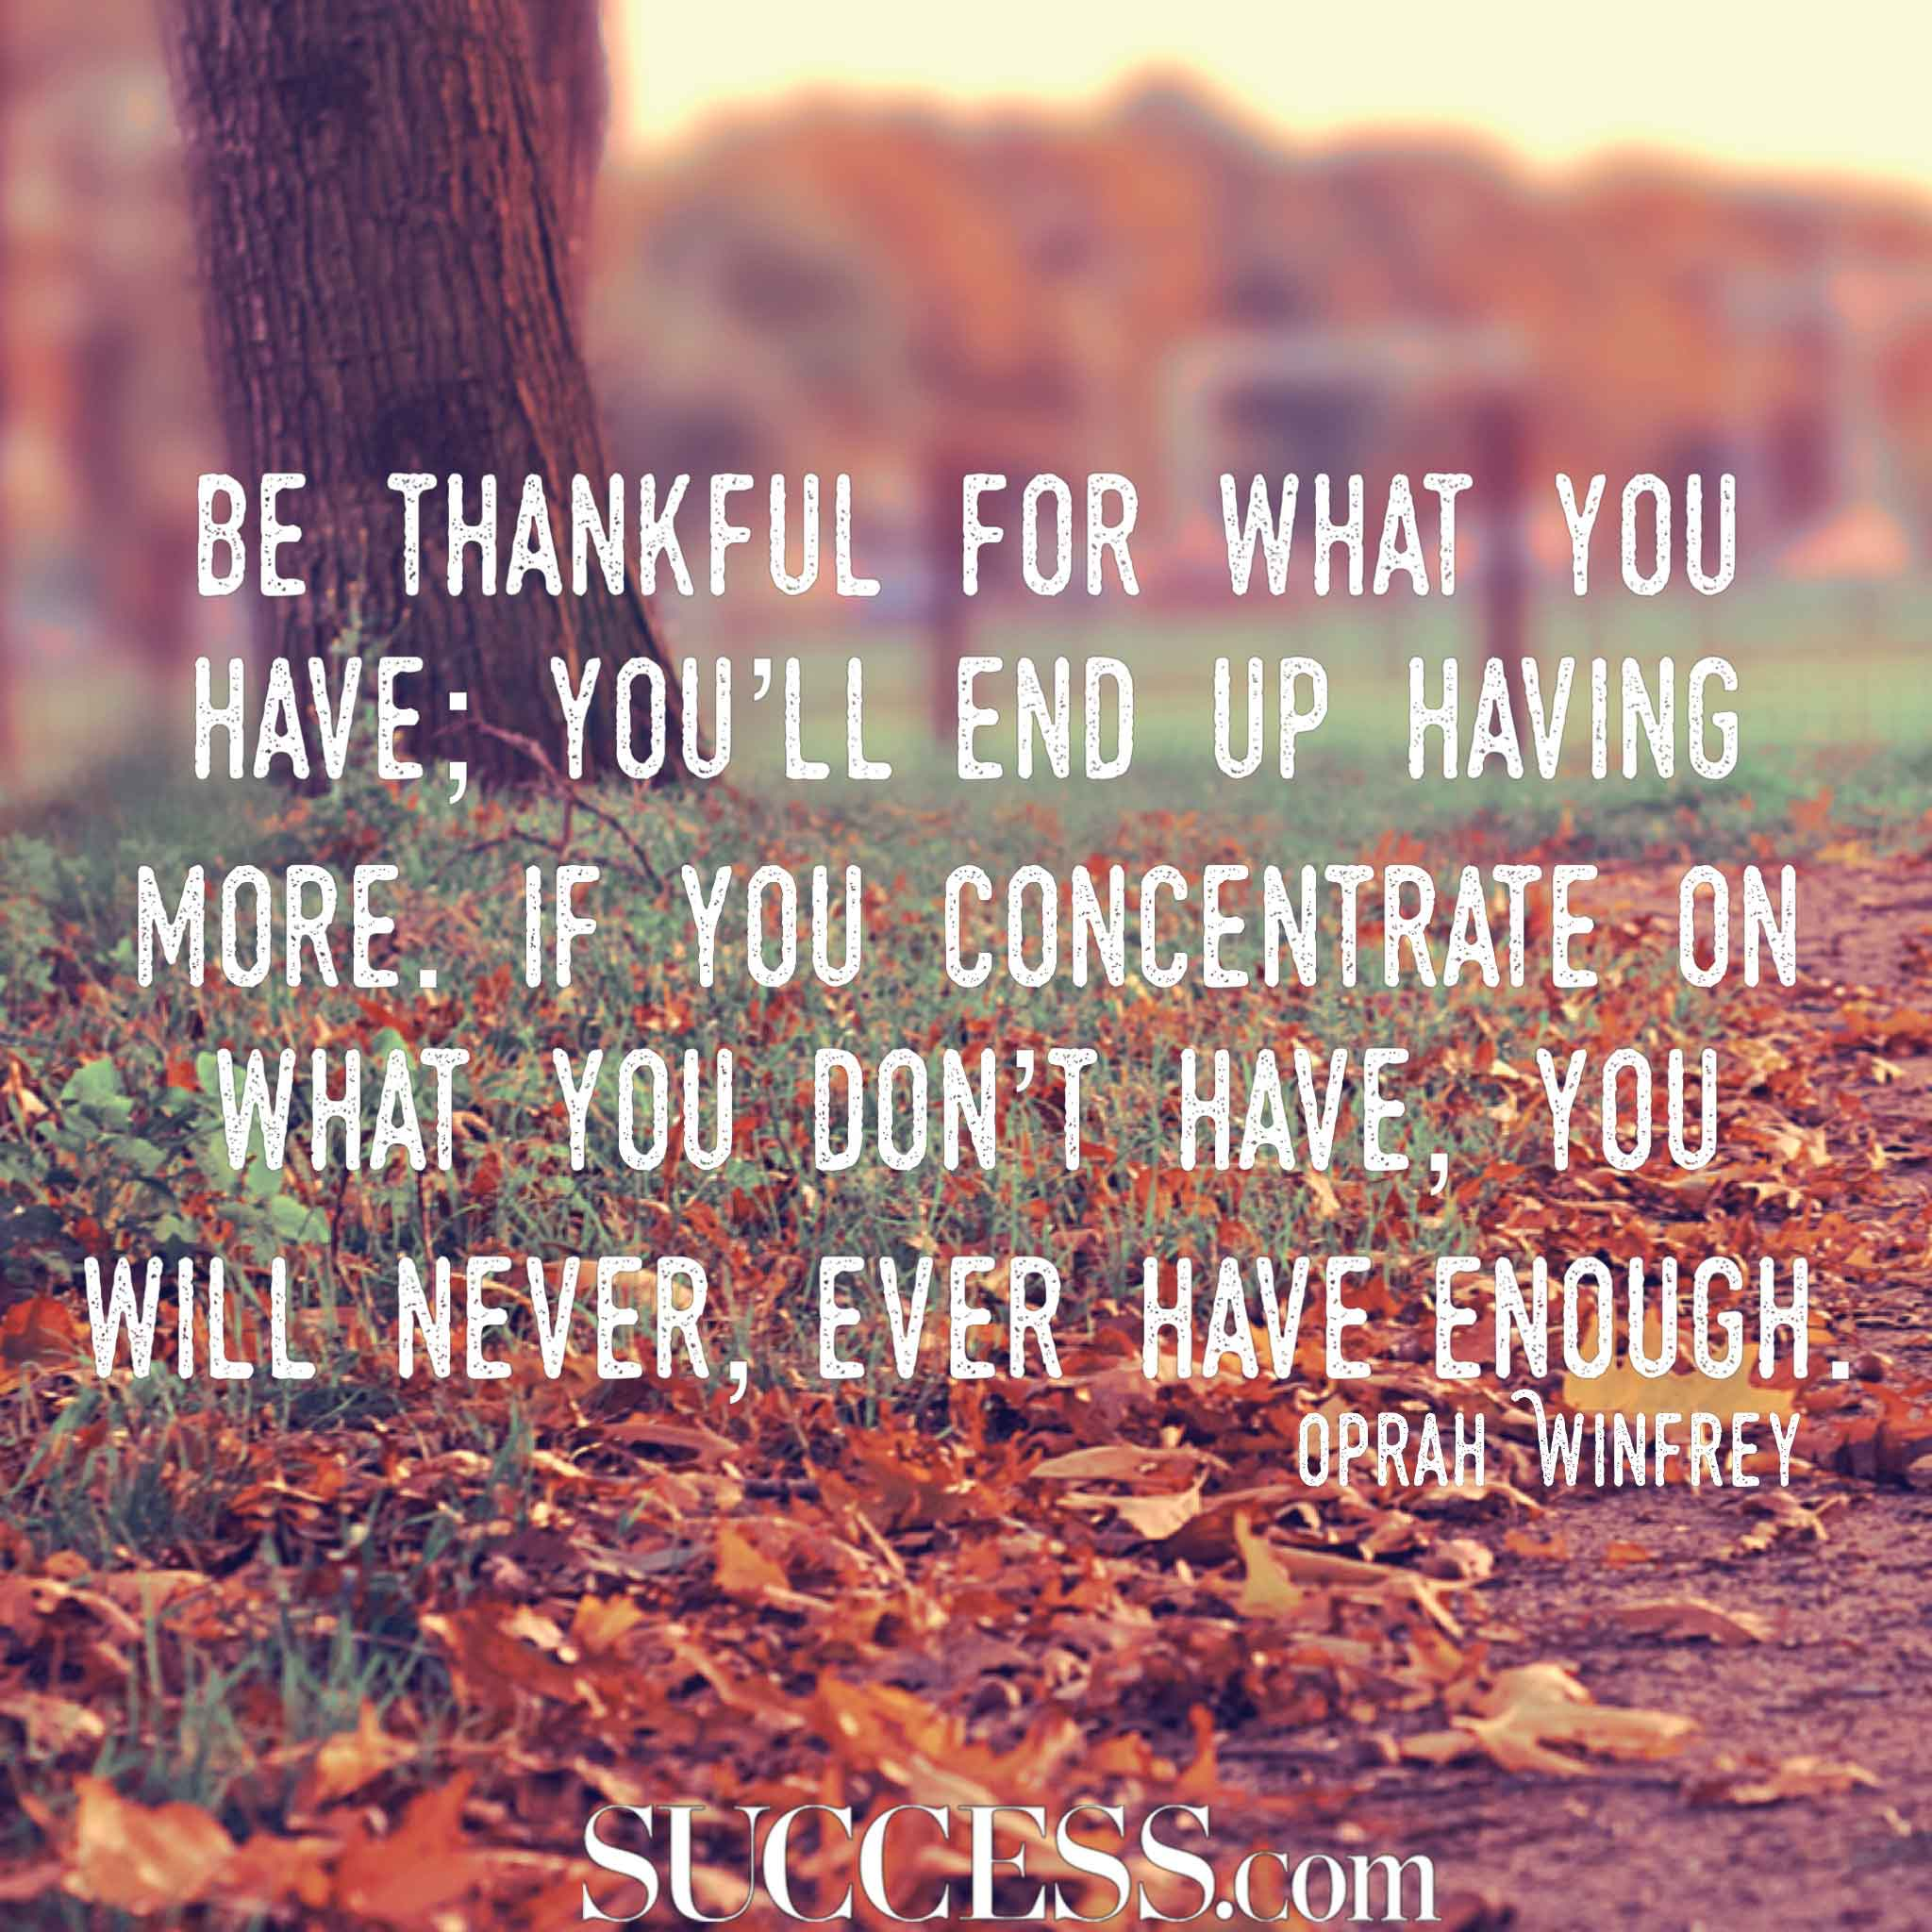 Image of: Life Quotes Success Magazine 15 Thoughtful Quotes About Gratitude